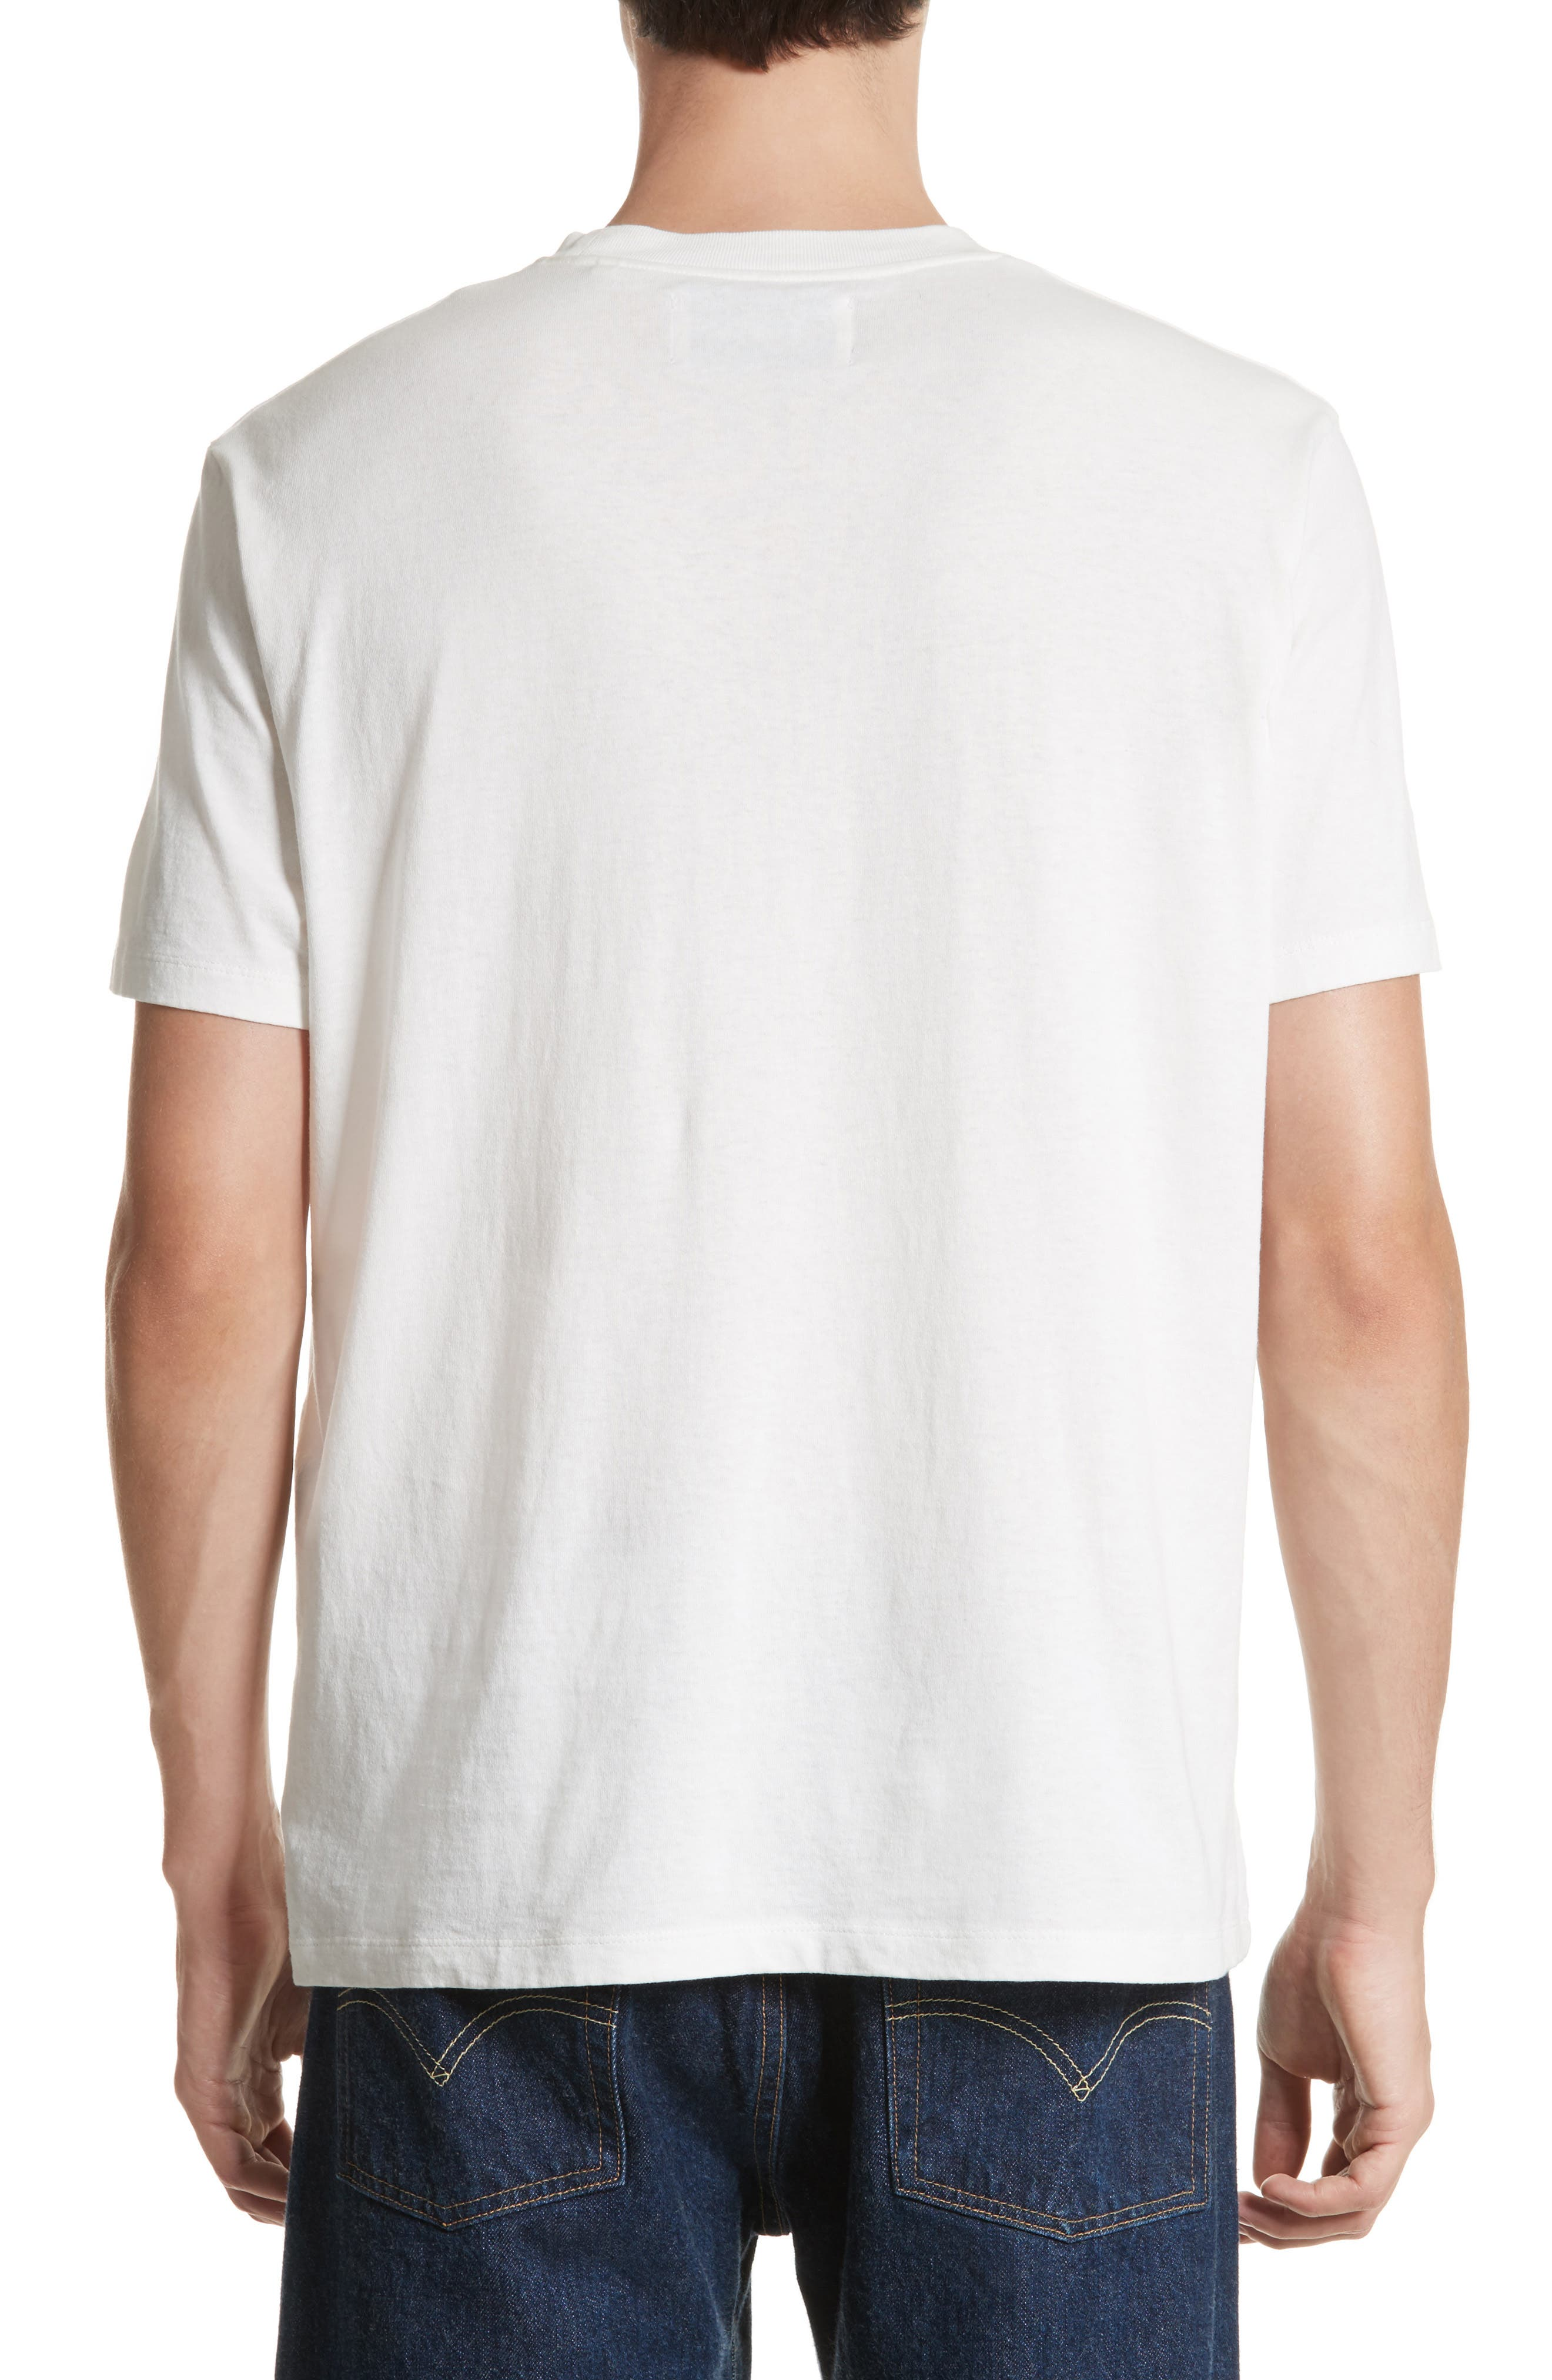 Bored Is All We Are Graphic T-Shirt,                             Alternate thumbnail 2, color,                             White